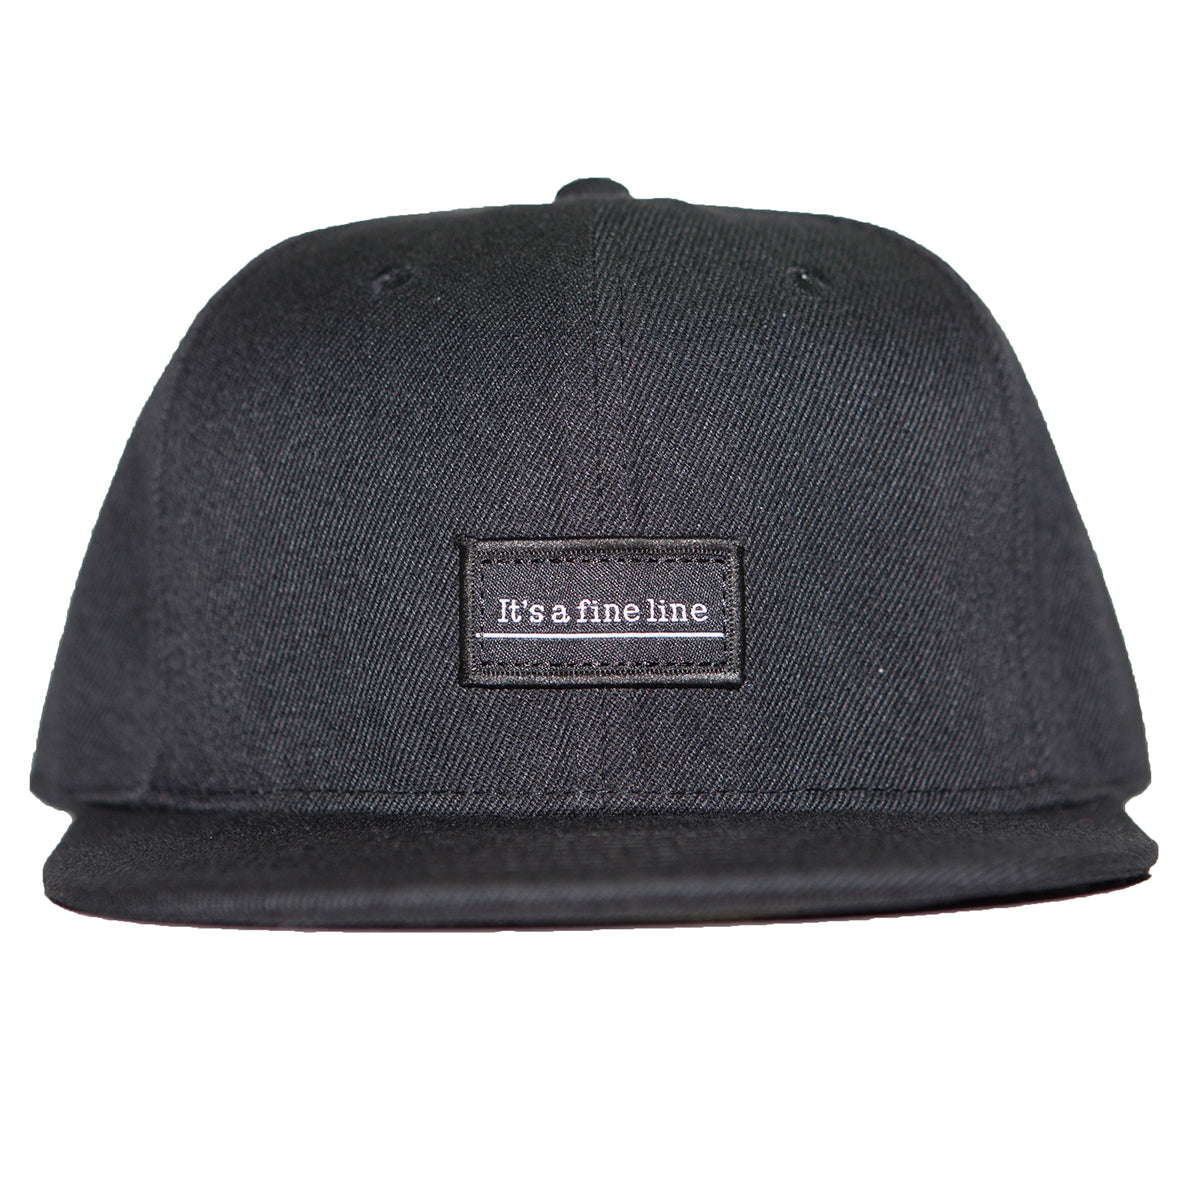 Fine Line Snapback - Fairly Casual - Hats